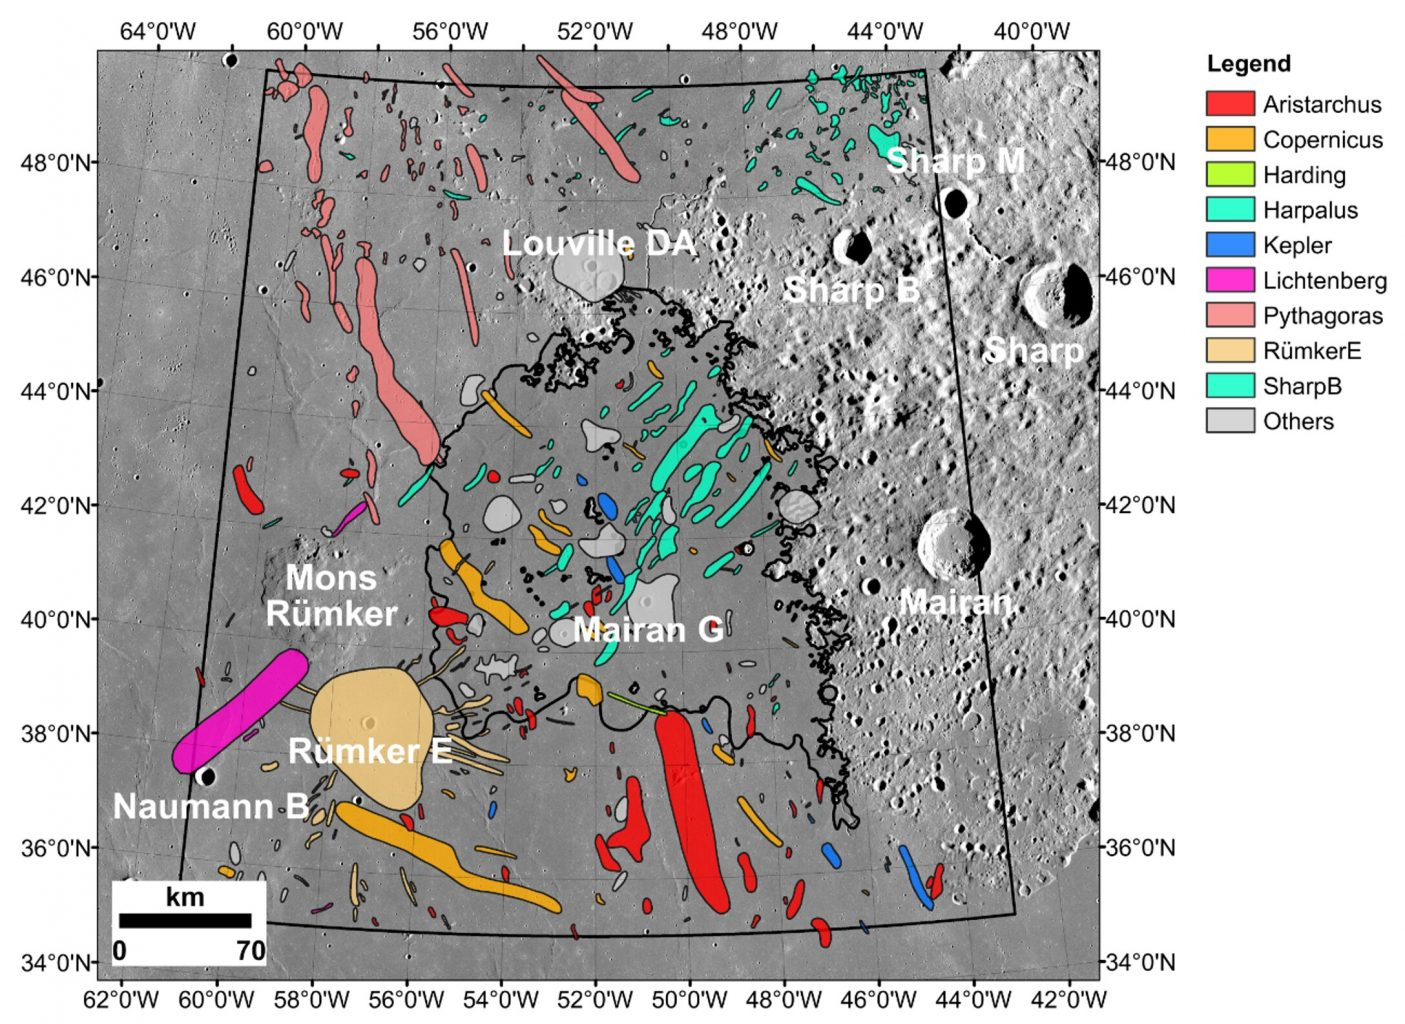 Chang'e-5's landing site and nearby impact craters that could be the sources of the exotic materials found in the samples. Credit: Qian et al. 2021